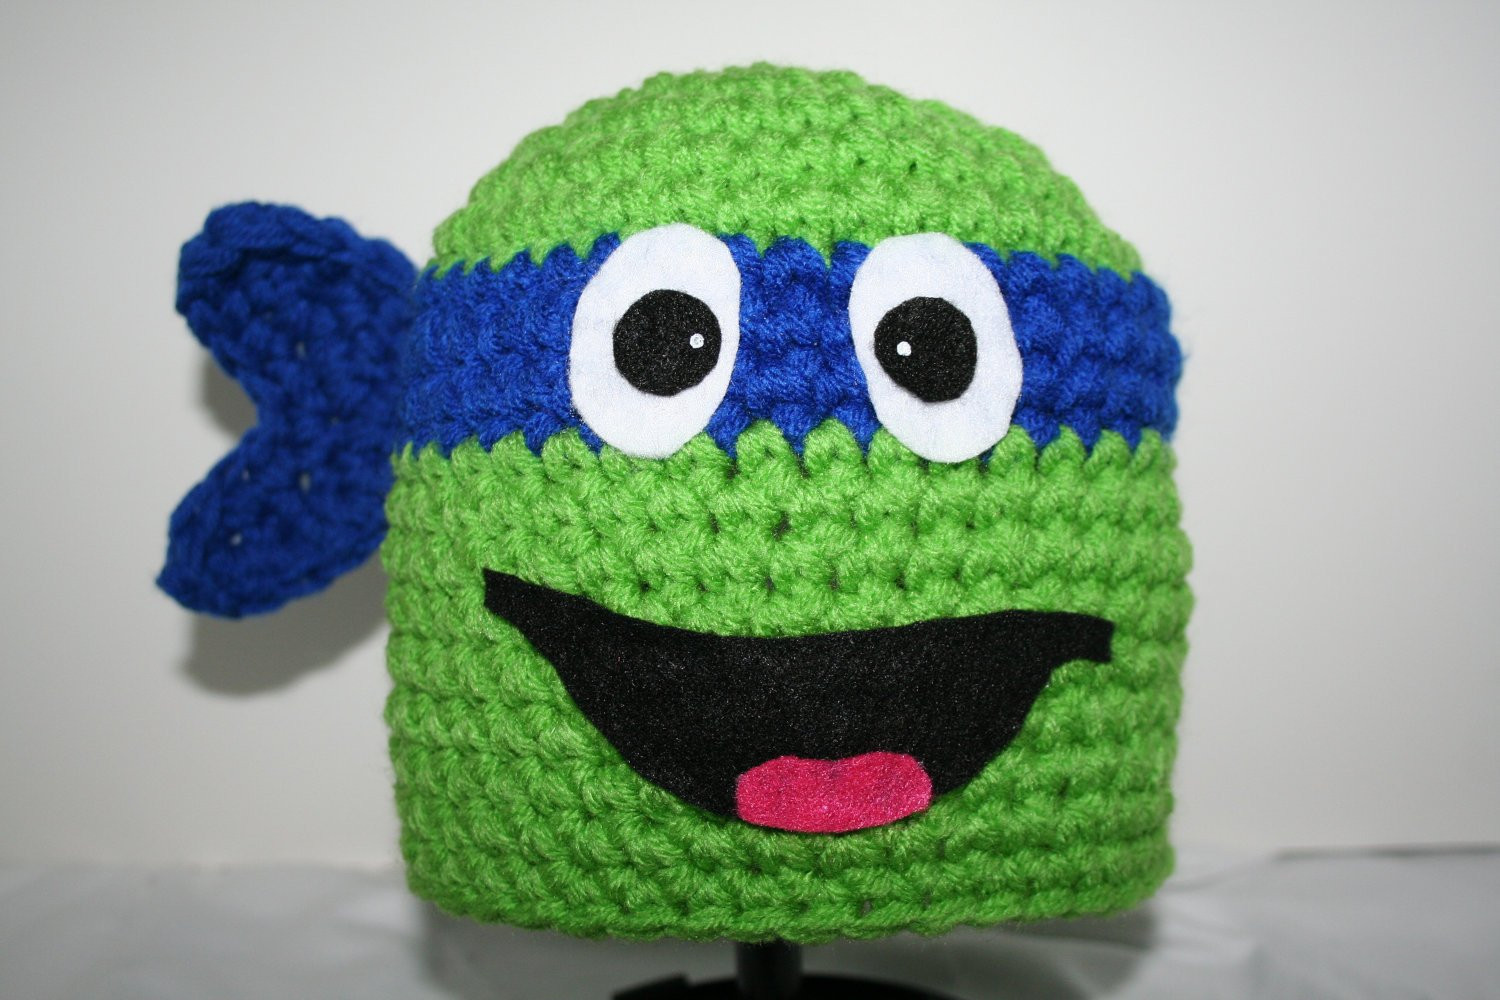 Crochet Ninja Turtle Hat Inspirational Blue Ninja Turtle Hat Handmade Crocheted Character Hat Of Innovative 46 Pictures Crochet Ninja Turtle Hat